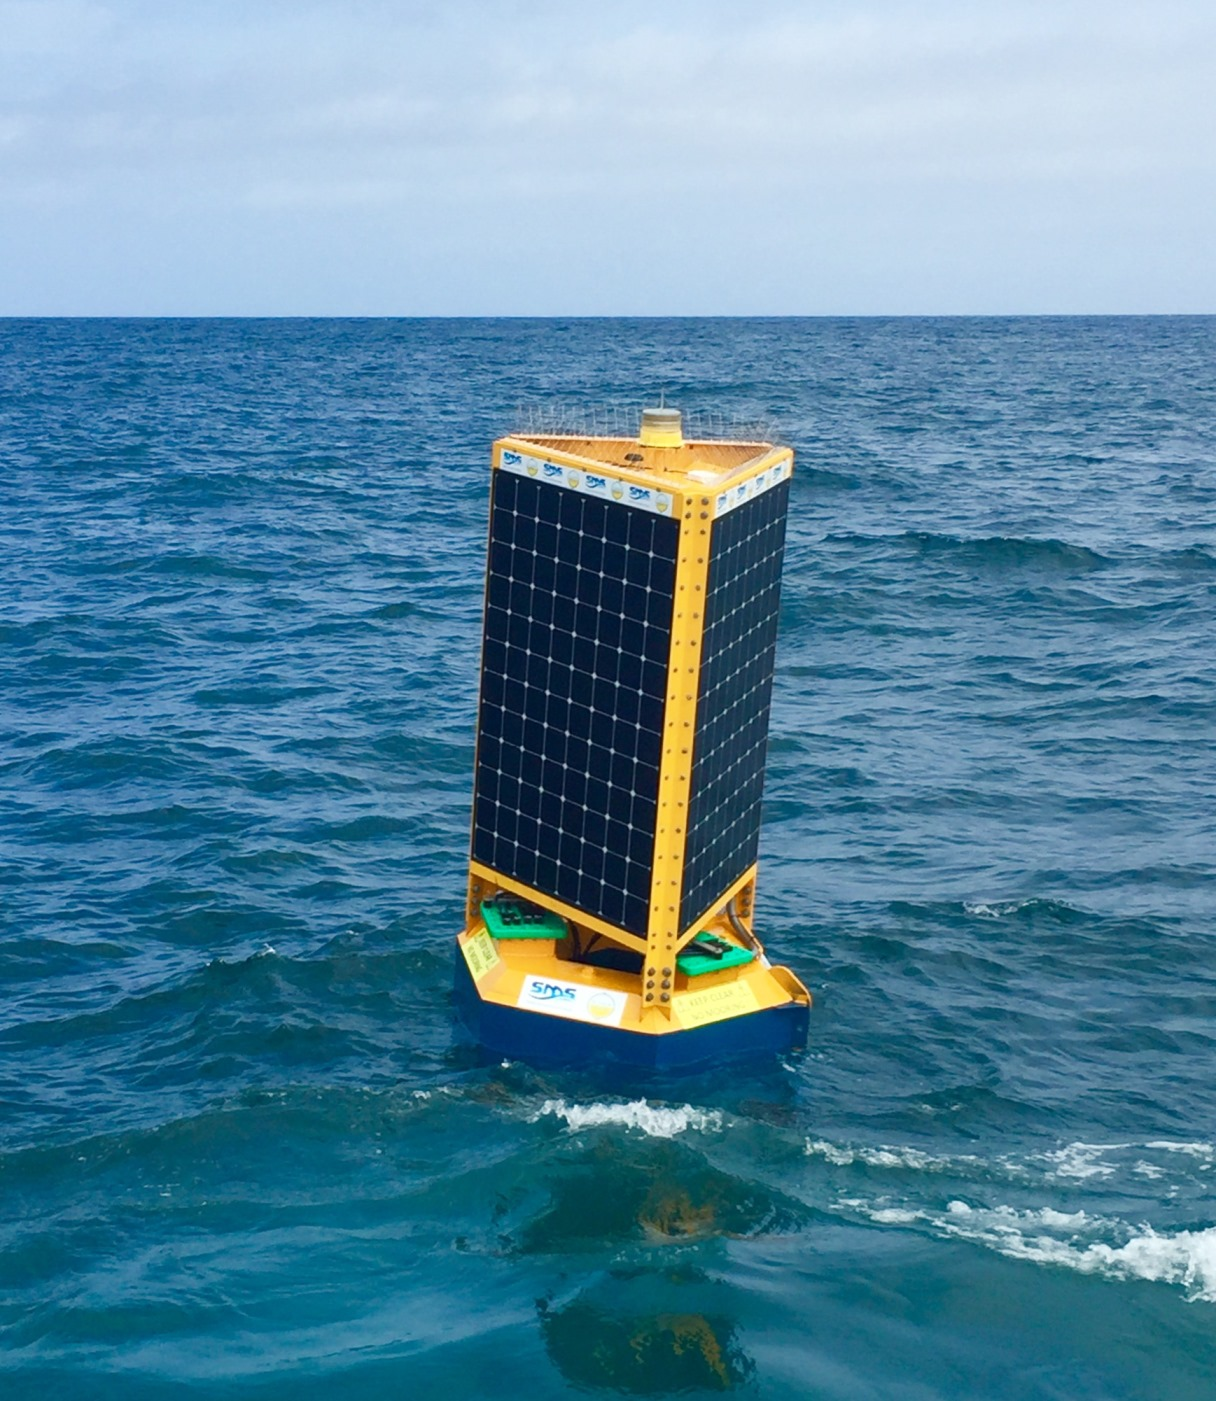 The floating Clever Buoy tested at Bondi Beach near Sydney, Australia. The buoy is connected to sonar units installed on the sea floor.